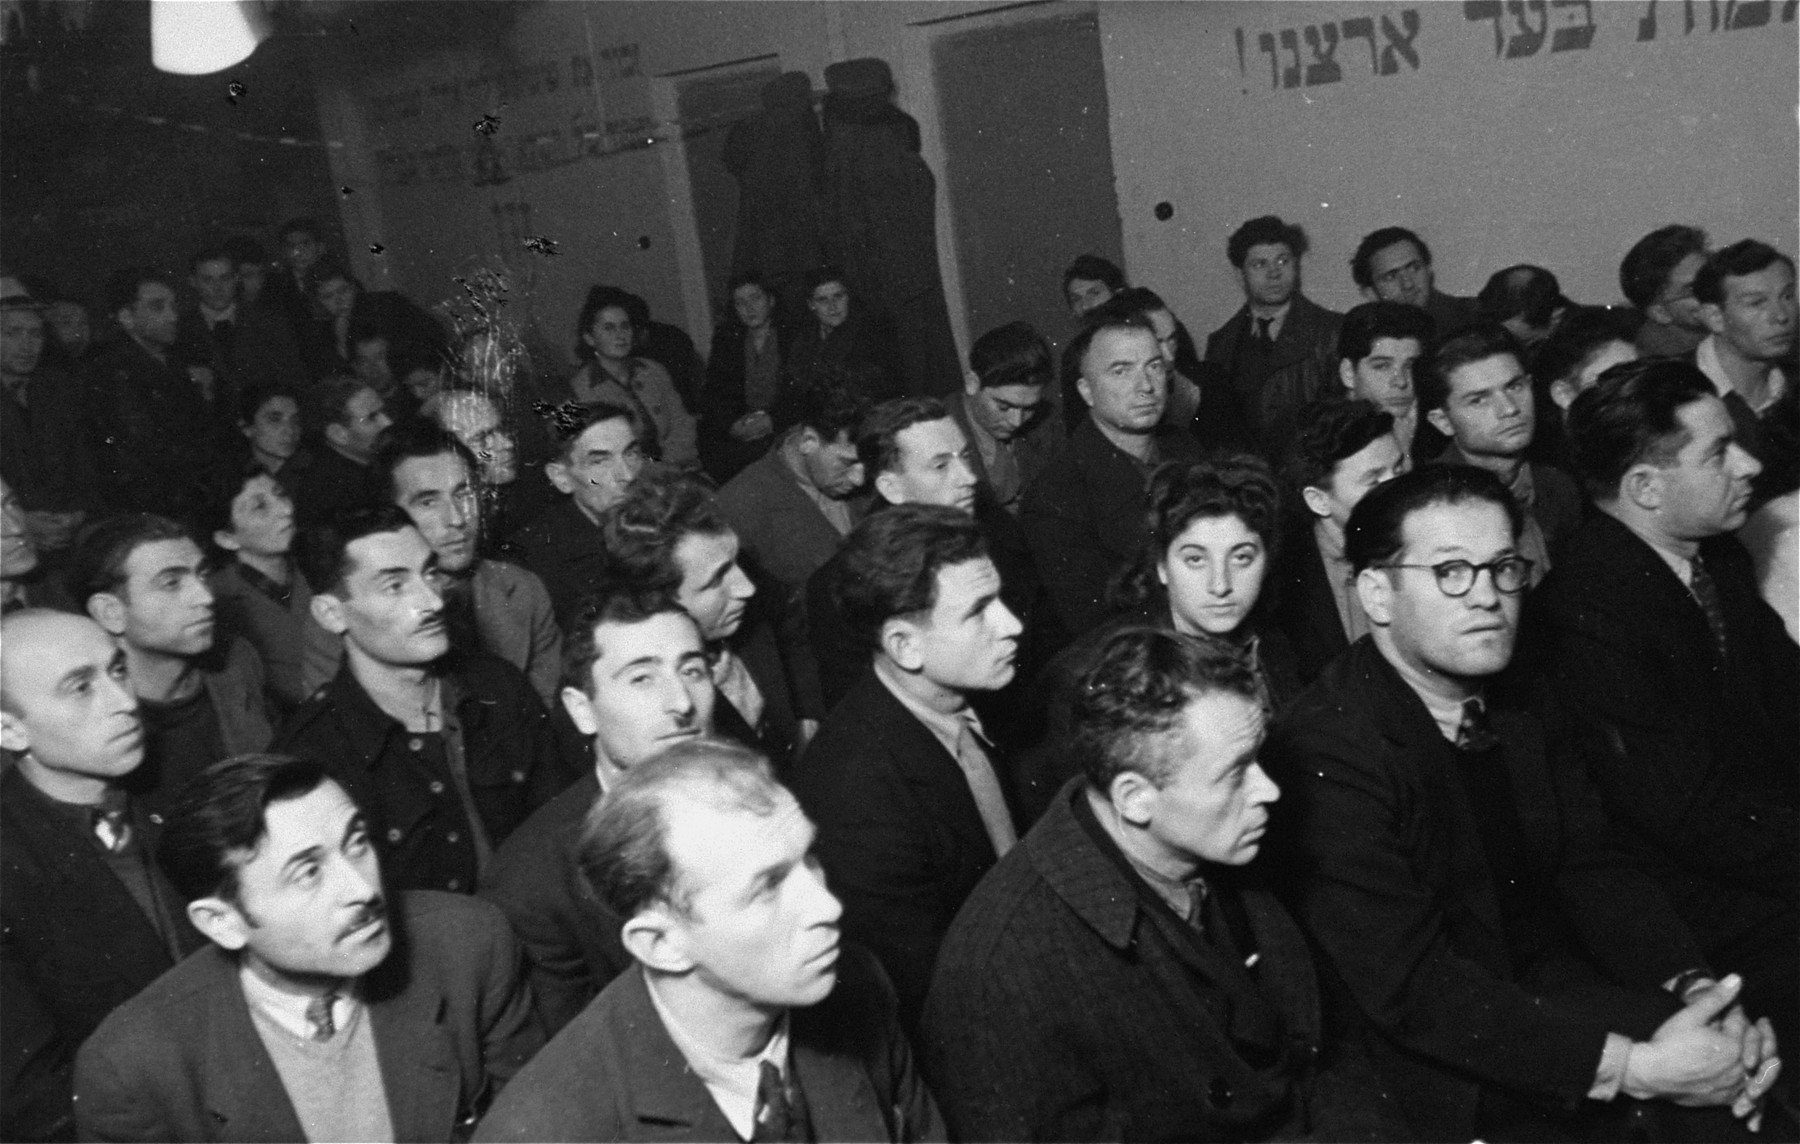 A large crowd gathers for a Zionist political meeting in Zeilsheim displaced person's camp.